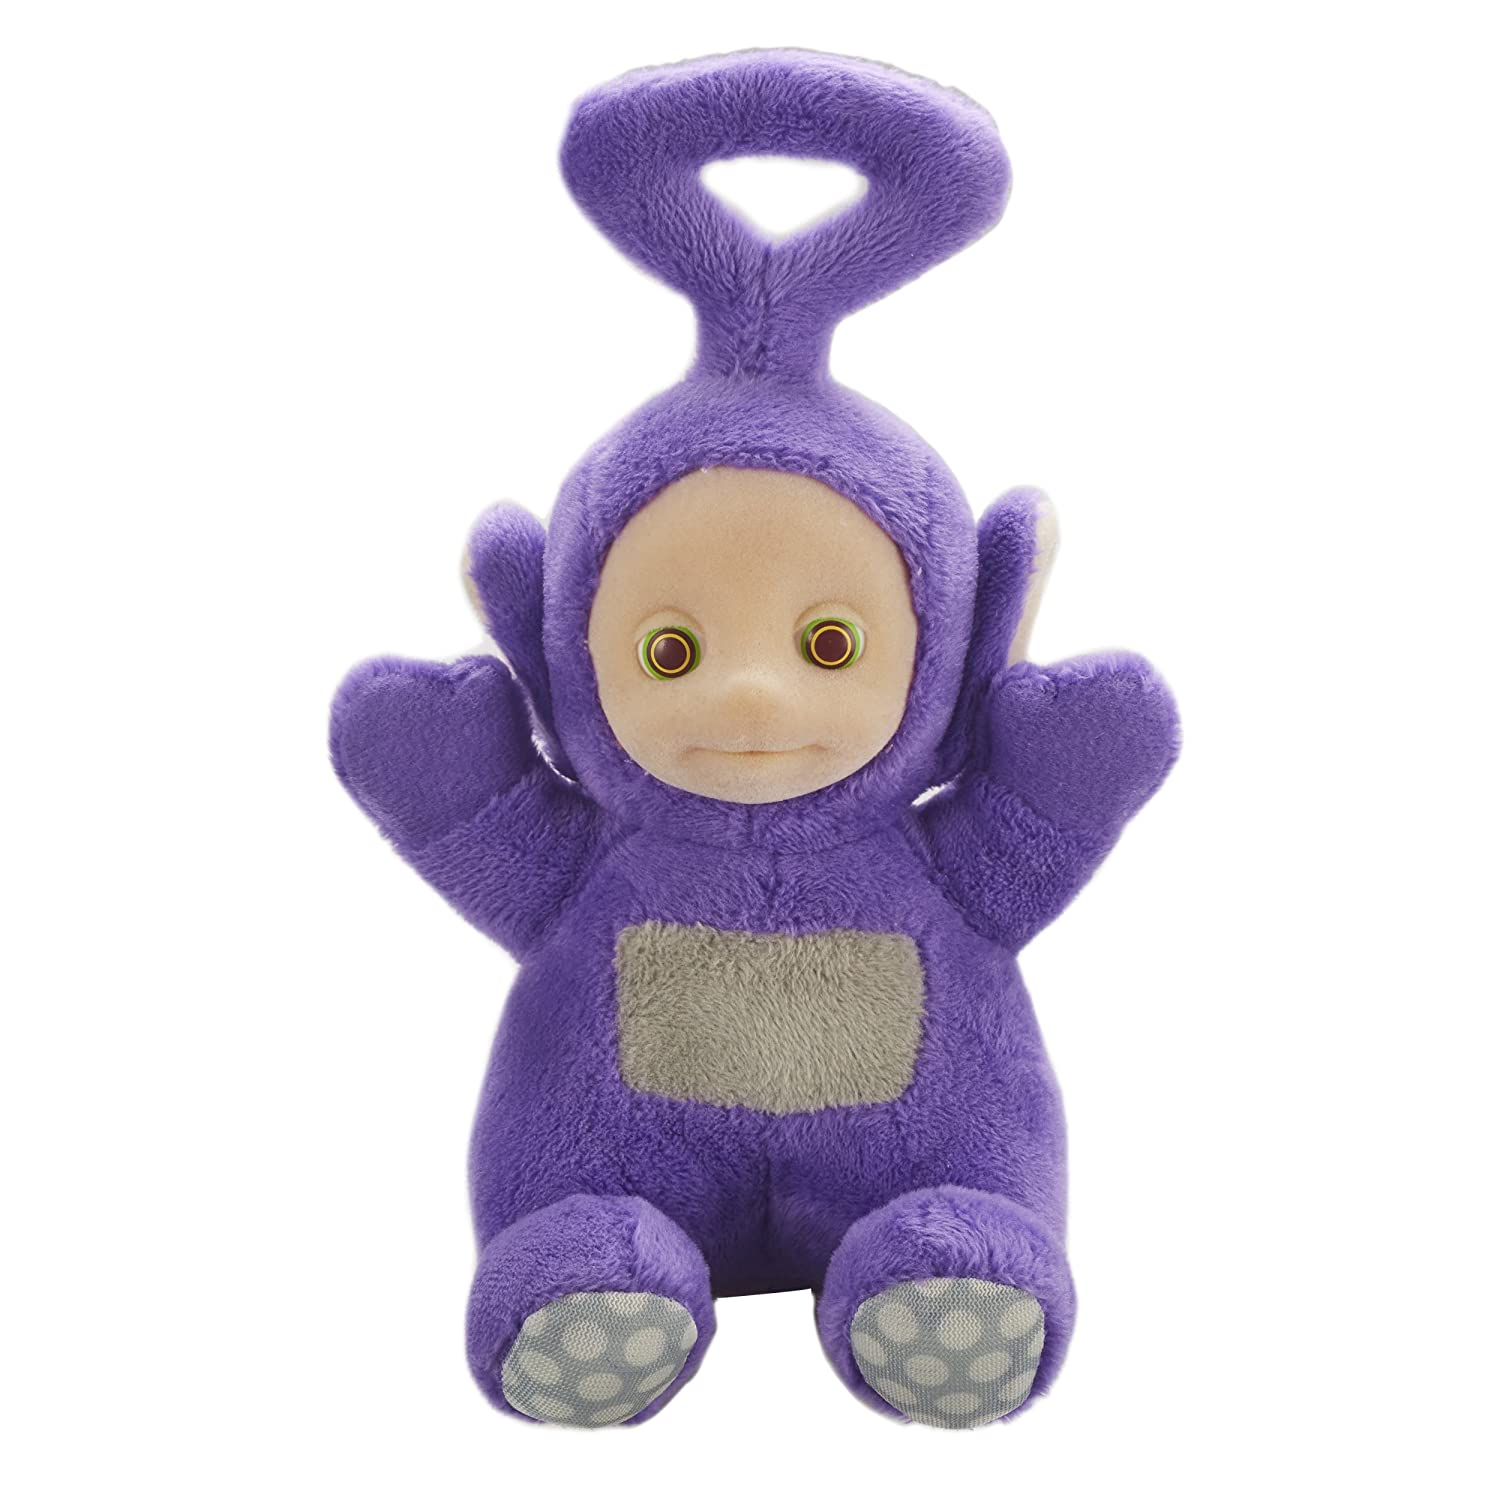 "Teletubbies 6"" Super Soft Plush   Tinky Winky by Teletubbies"